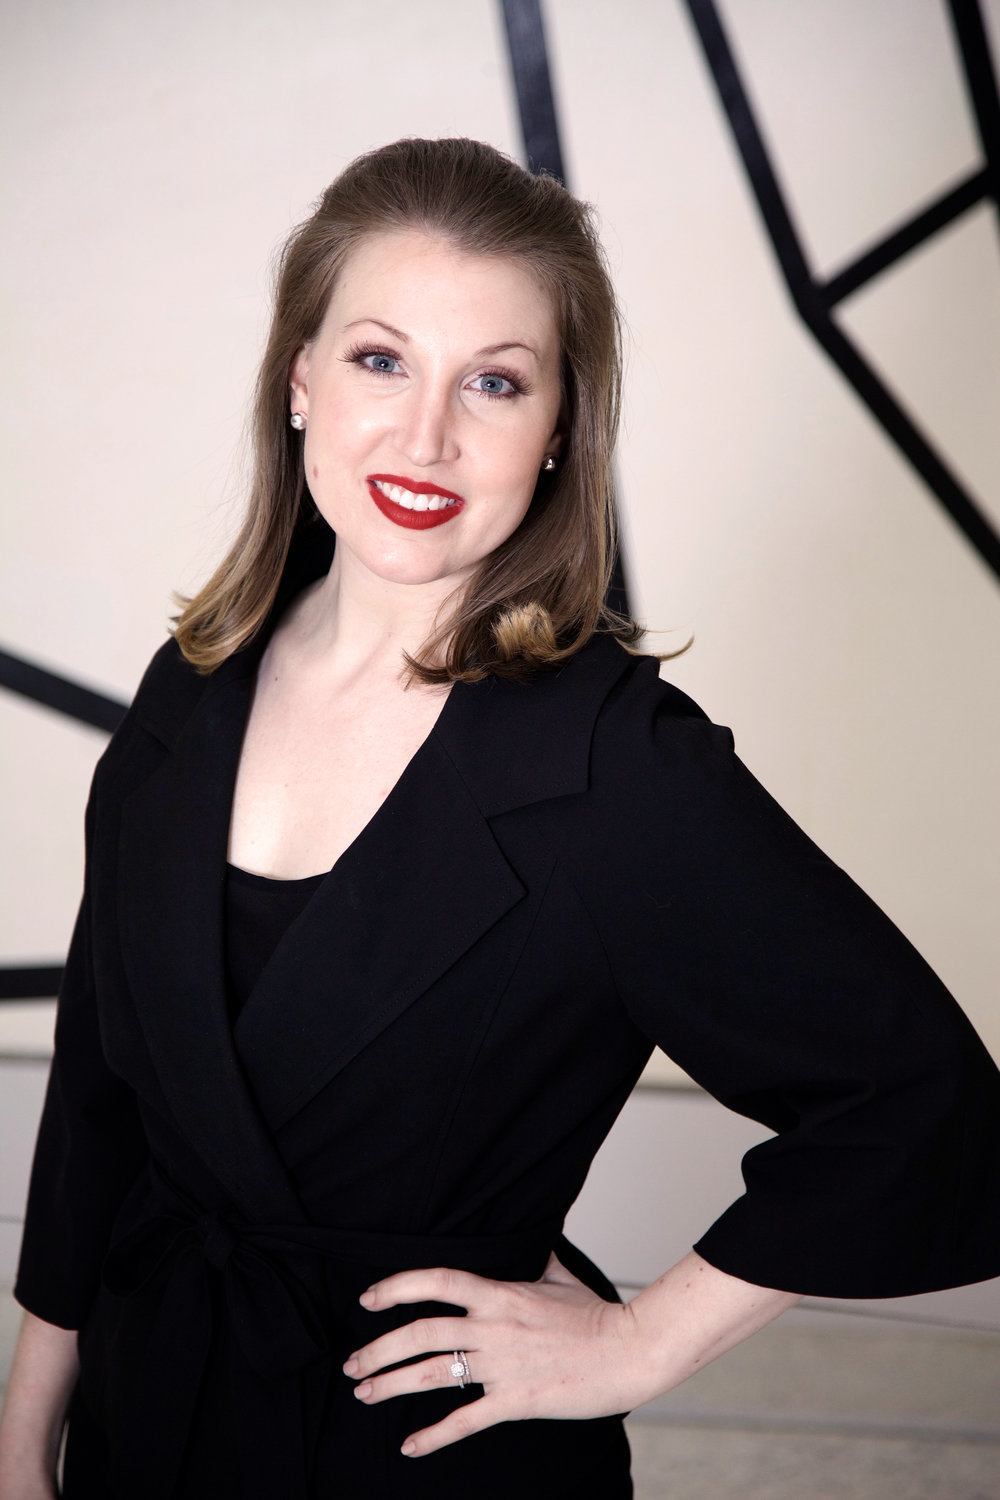 Sarah Clay Lindvall, Director 2012-2017, Founding Member Sarah currently serves as the Director of Arts Education and Community Outreach at the Cobb Energy Performing Arts Centre in Atlanta, GA. Prior to moving to Atlanta in August 2017, Sarah was the Director of Music and Dramatic Arts at the Notre Dame School of Manhattan. Besides directing Sirens of Gotham, Sarah acted as faculty and coach for Sweet Adelines International's Greater NY/NJ Region 15 and taught private voice to students of all ages. Her previous positions as an educator include Elementary Music Instructor at Brooklyn's Beacon School of Excellence – P.S. 172, Early Childhood Music Instructor at TLB Music in Manhattan, and Voice Instructor for PLAY Music and Arts Studio. She also has extensive performance experience in Opera, Musical Theatre, and Choral Music. Before residing in New York City, Sarah was a featured performer at The Walt Disney World Resort in Orlando, Florida. Sarah received a Master of Music degree in Vocal Performance from New York University, and, prior to her graduate studies, received a Bachelor of Music degree in Music Education from Georgia Southern University. She now lives in Midtown, Atlanta with her husband, Brian Lindvall, and their adorable cat, Binx.